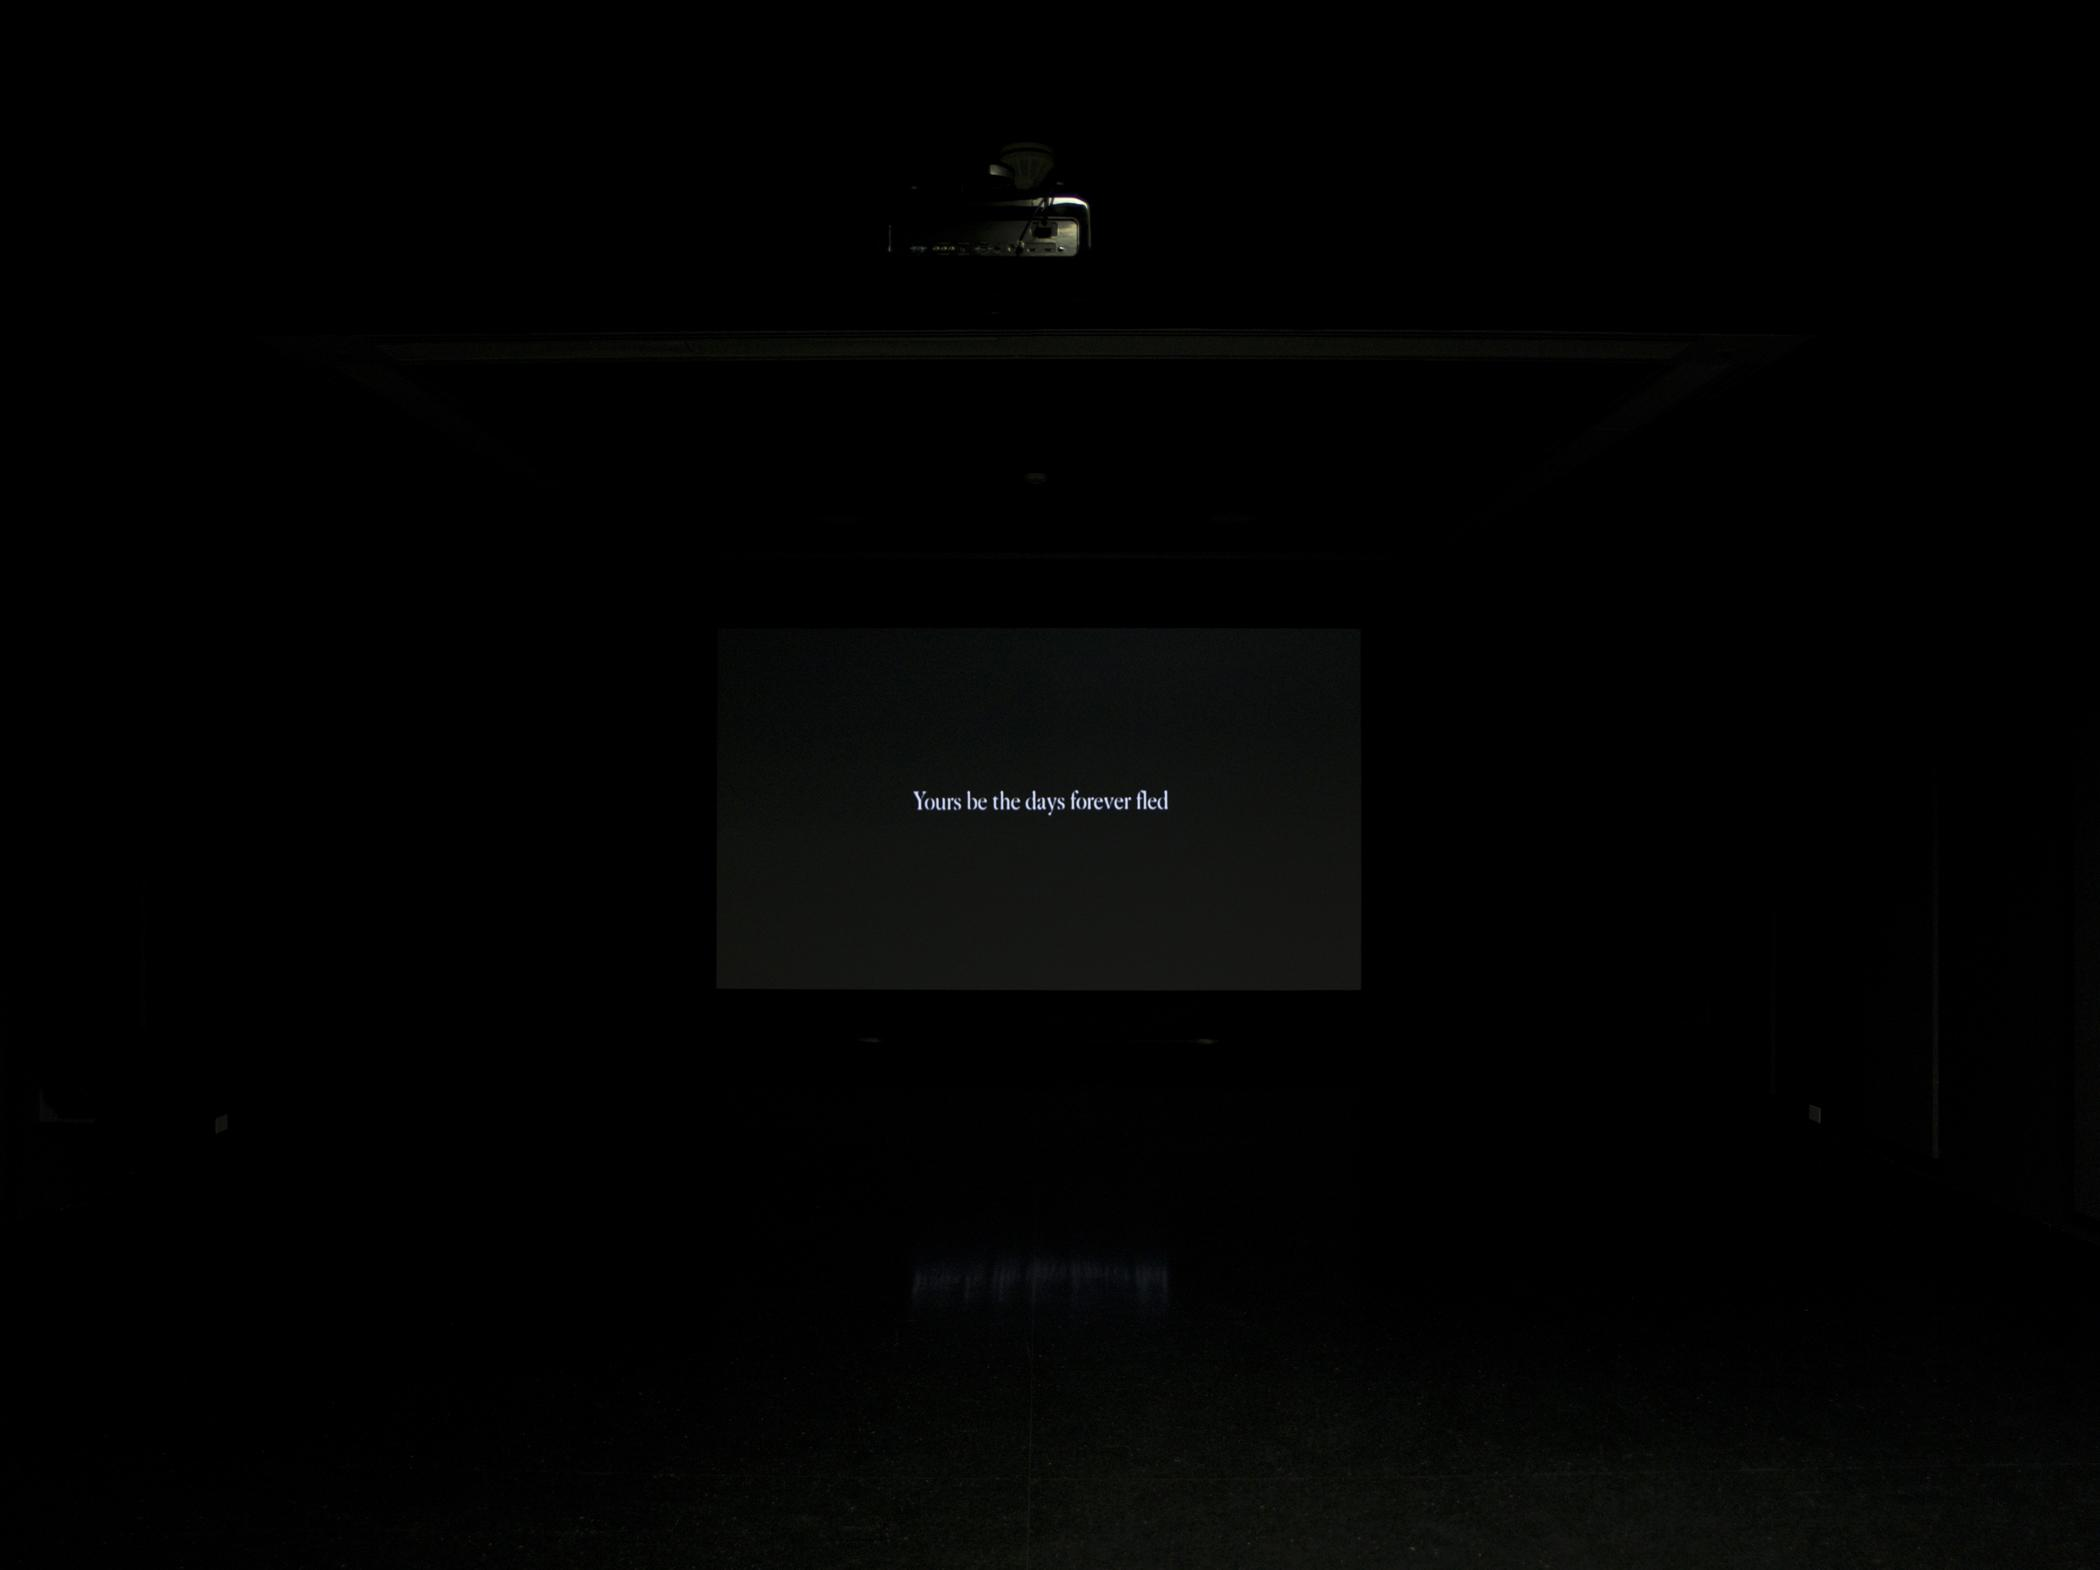 """A black screen that bears white text reads """"Yours be the days forever fled."""""""